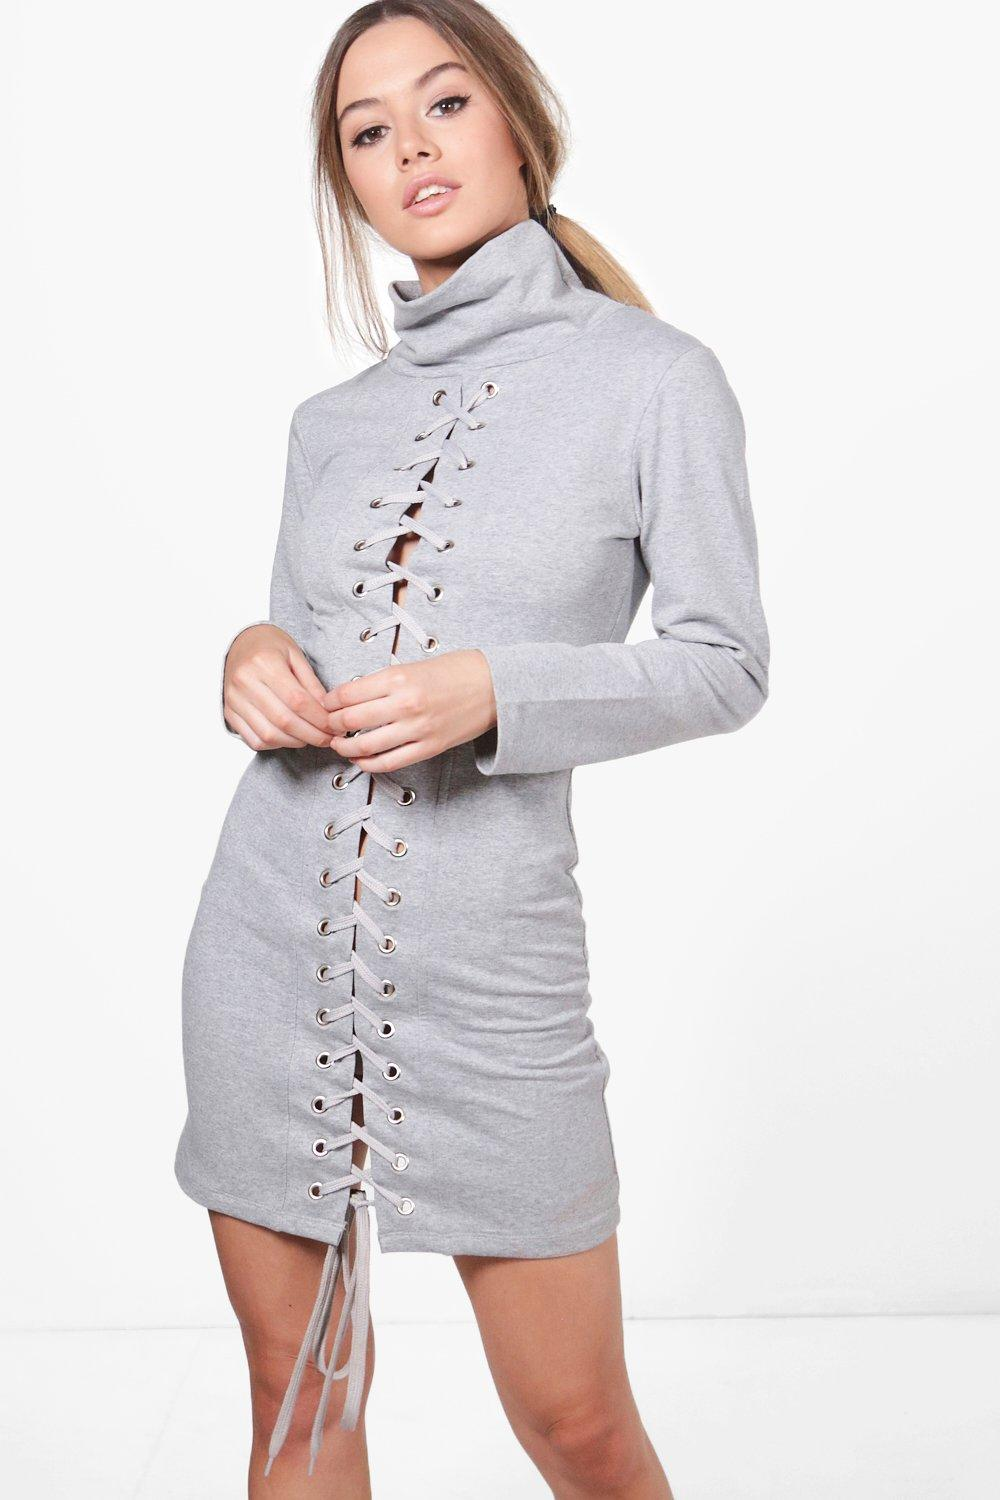 NEW-Boohoo-Womens-Petite-Emma-High-Neck-Lace-Up-Detail-Sweat-Dress-in